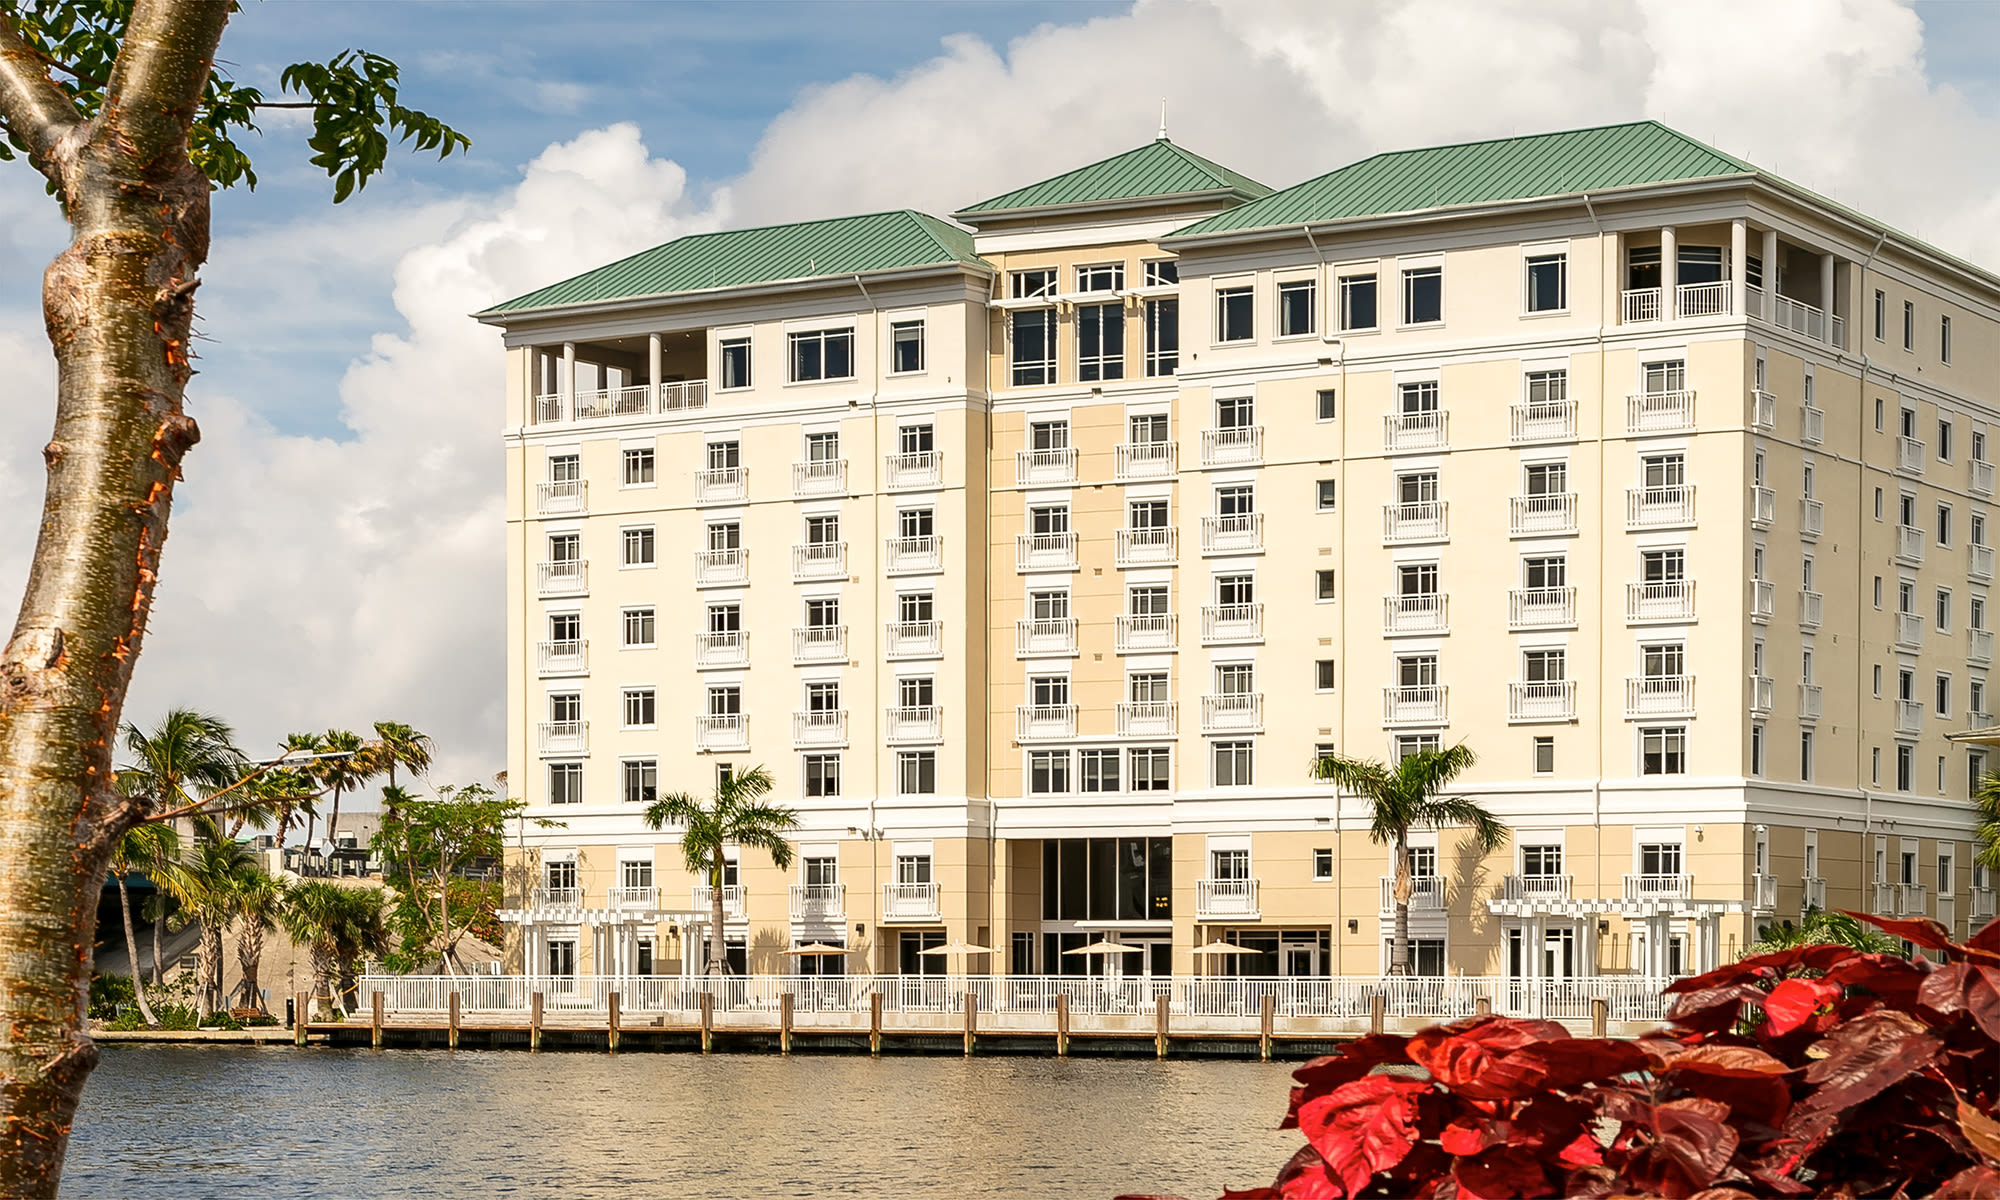 Senior living community in Fort Lauderdale